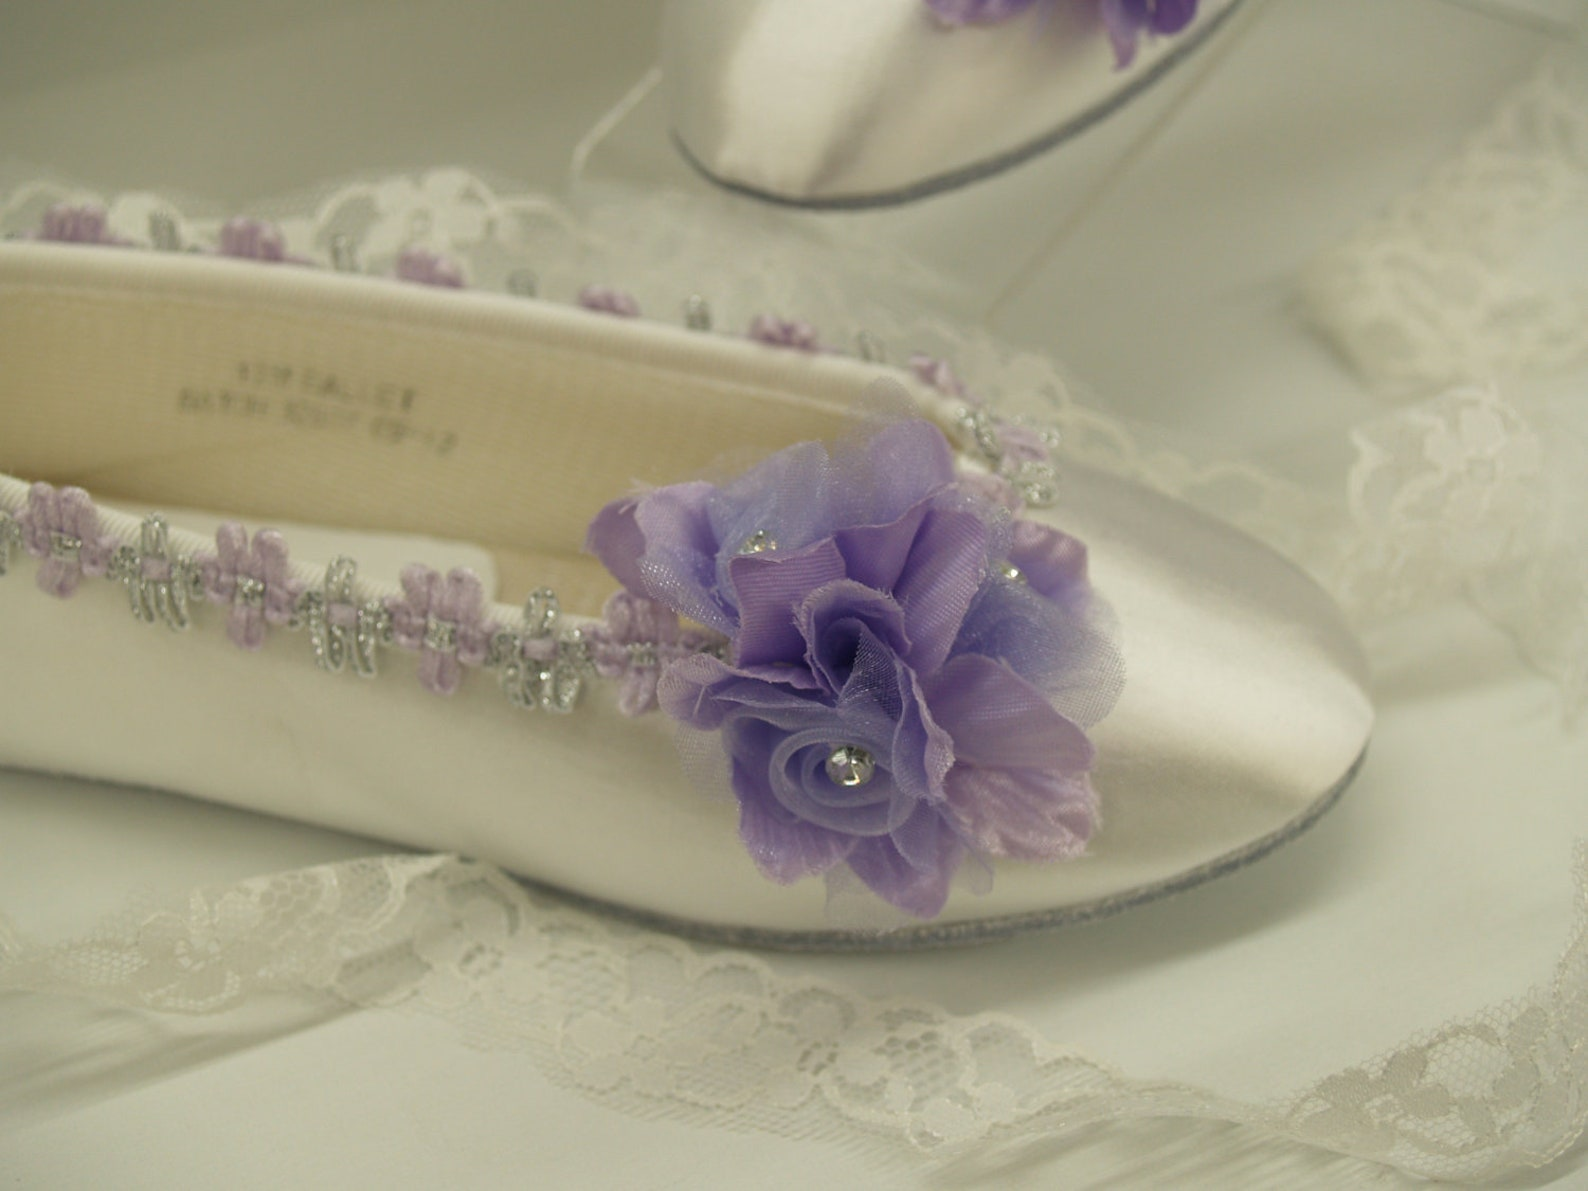 size 12 flower girls ballet style slippers white w purple flower w silver accents ready to ship,lace up ribbon ballet slipper,be